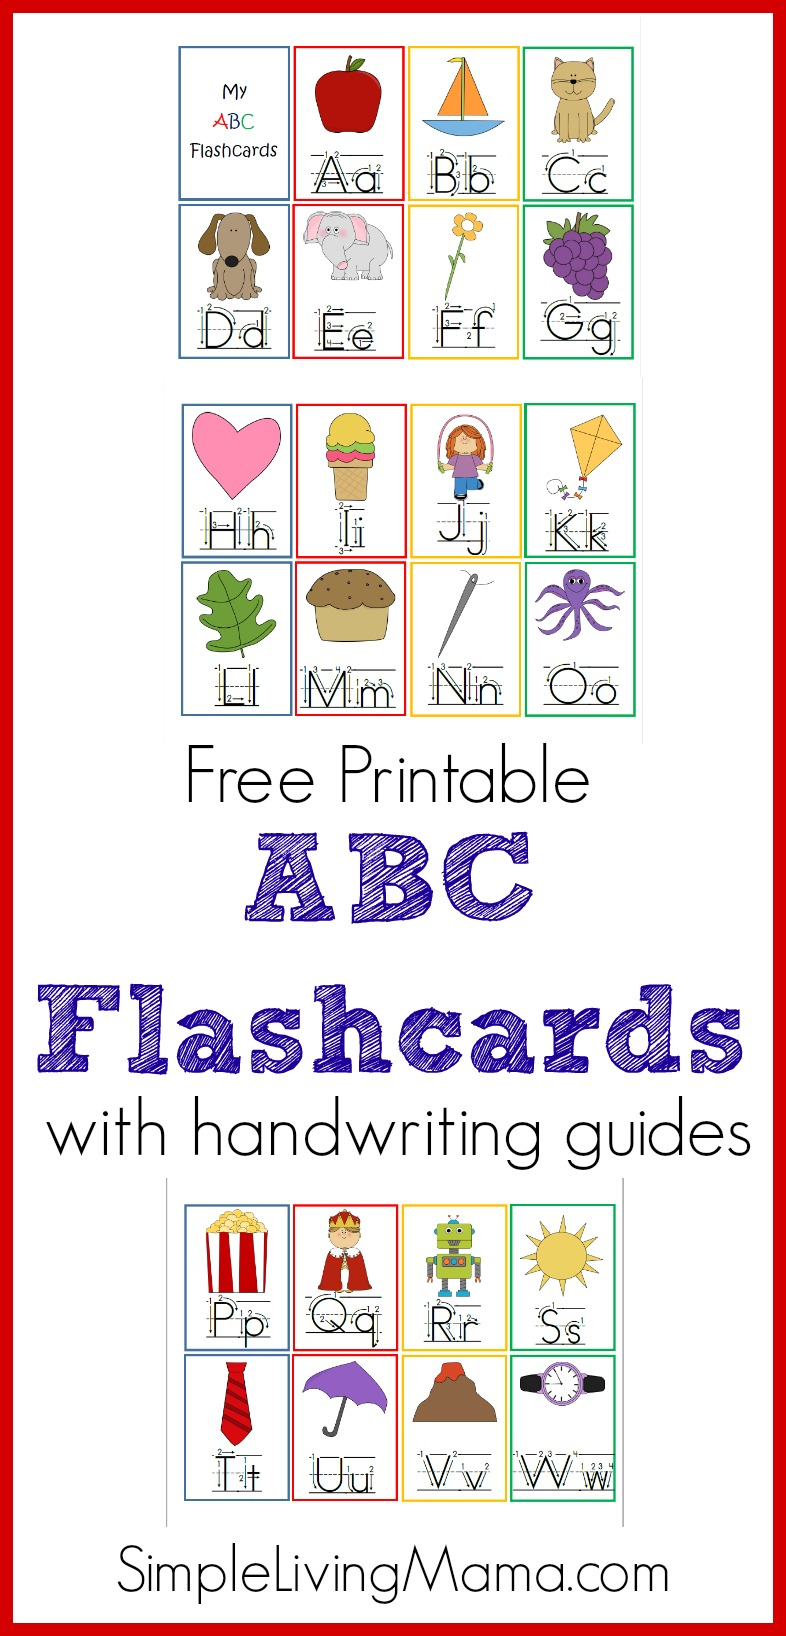 Printable Abc Flashcards - Homeschool Printables For Free - Free Printable Abc Flashcards With Pictures